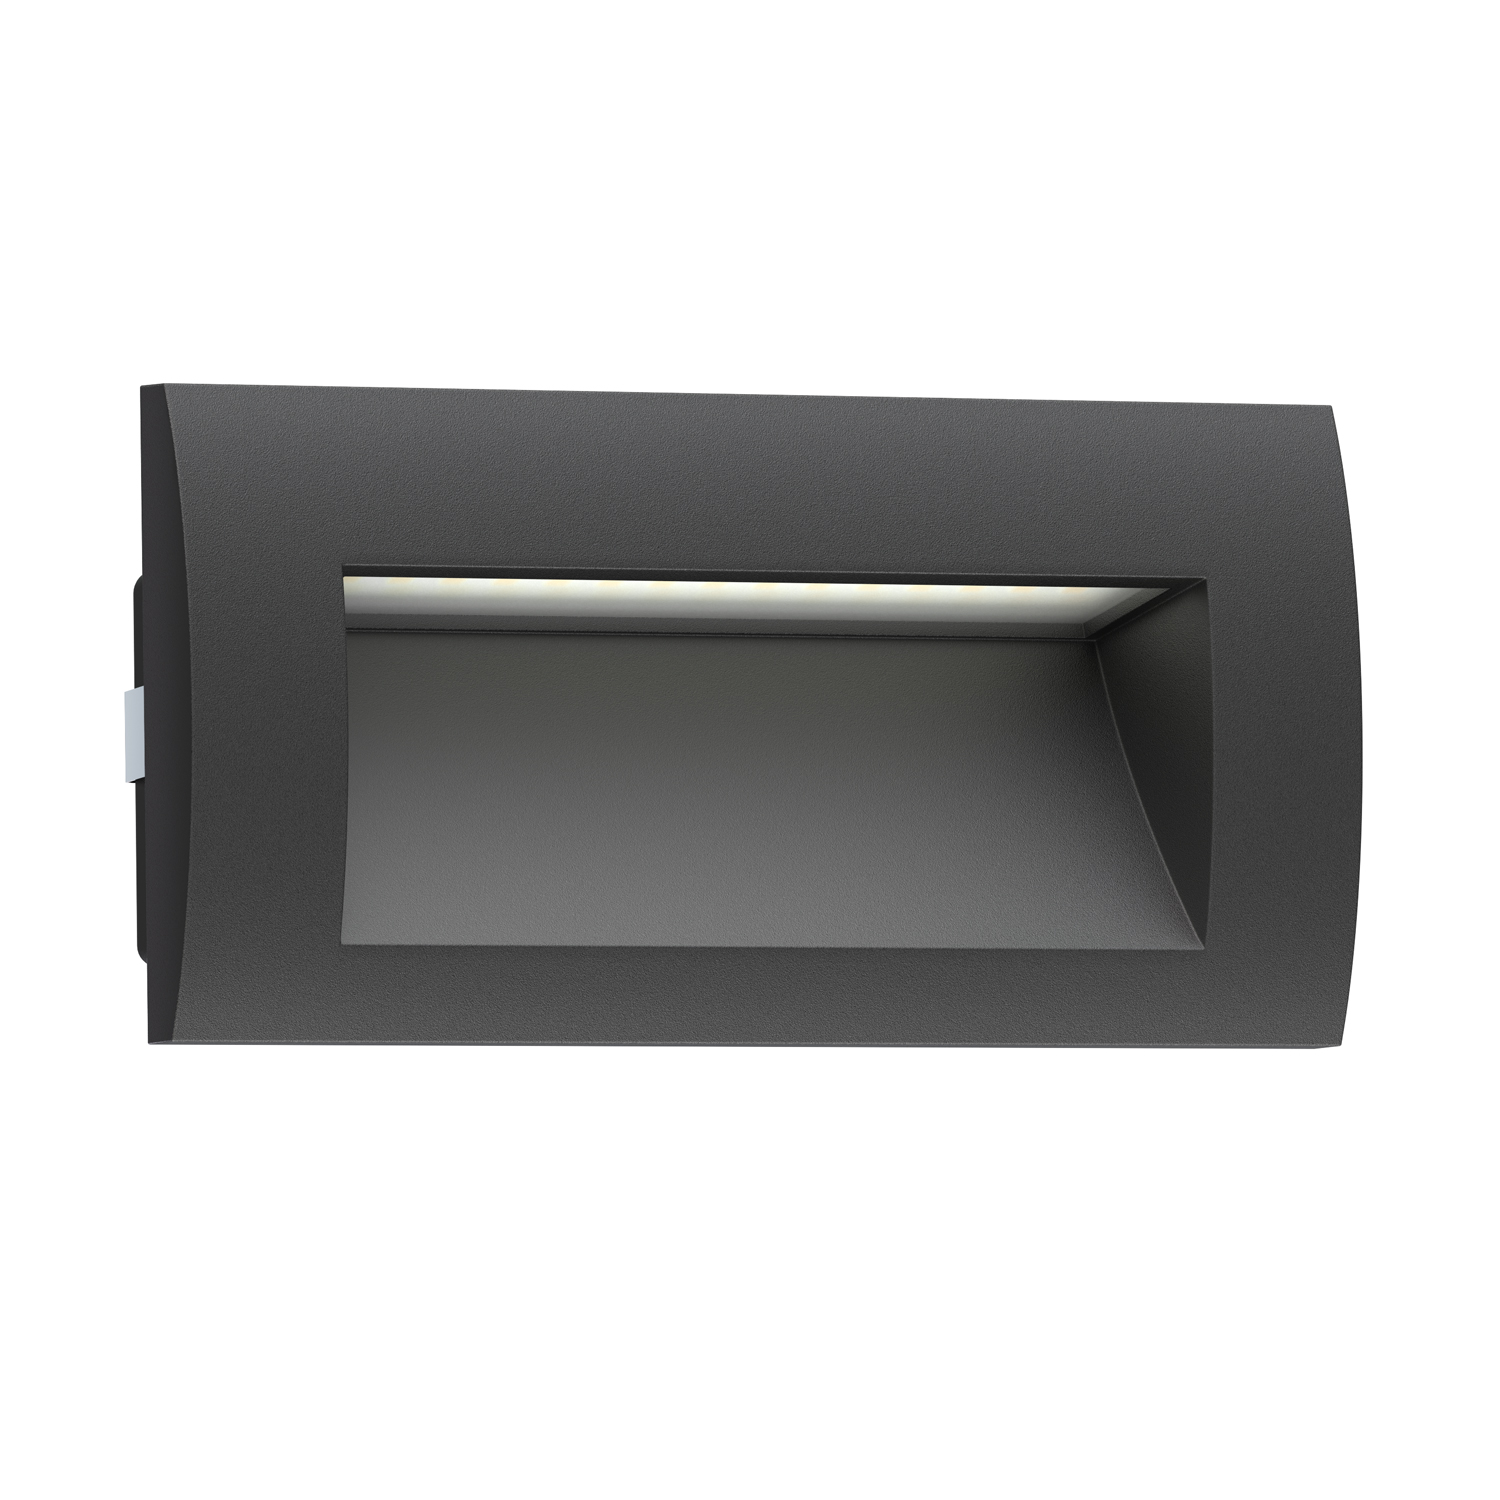 White Dimmable Wall Lights : LED Recessed Wall Light Zibal For Outdoor, Black, Warm White, 140x70mm eBay